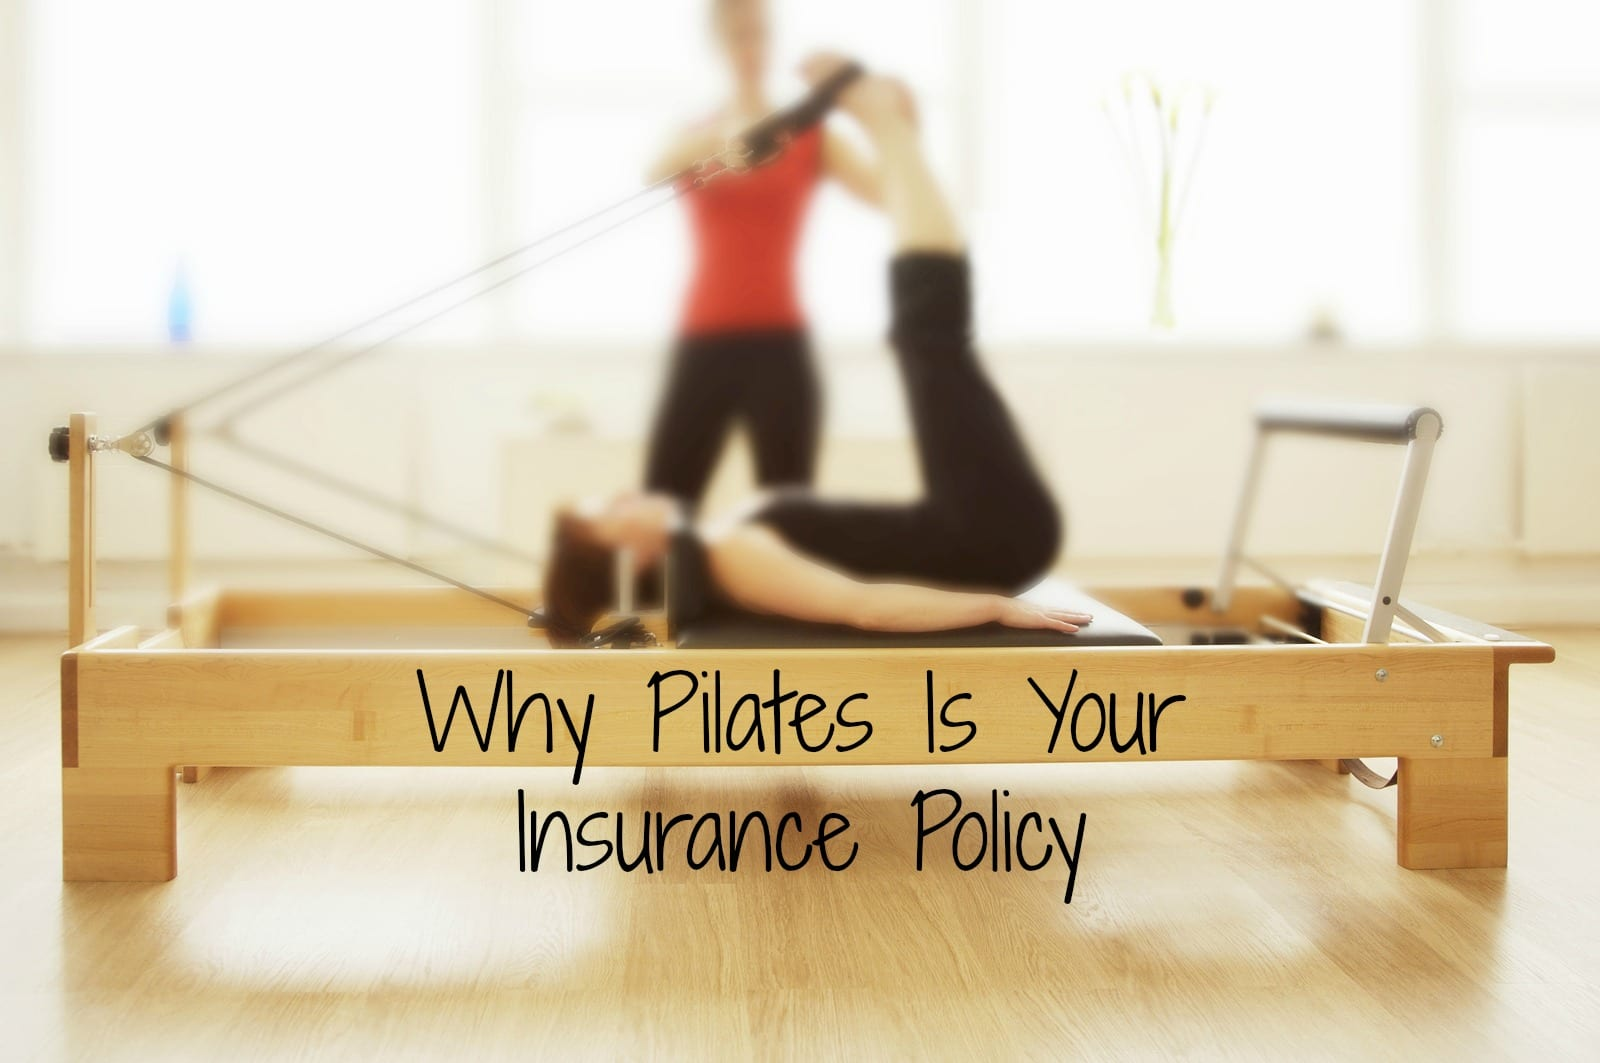 Why Pilates Is Your Insurance Policy